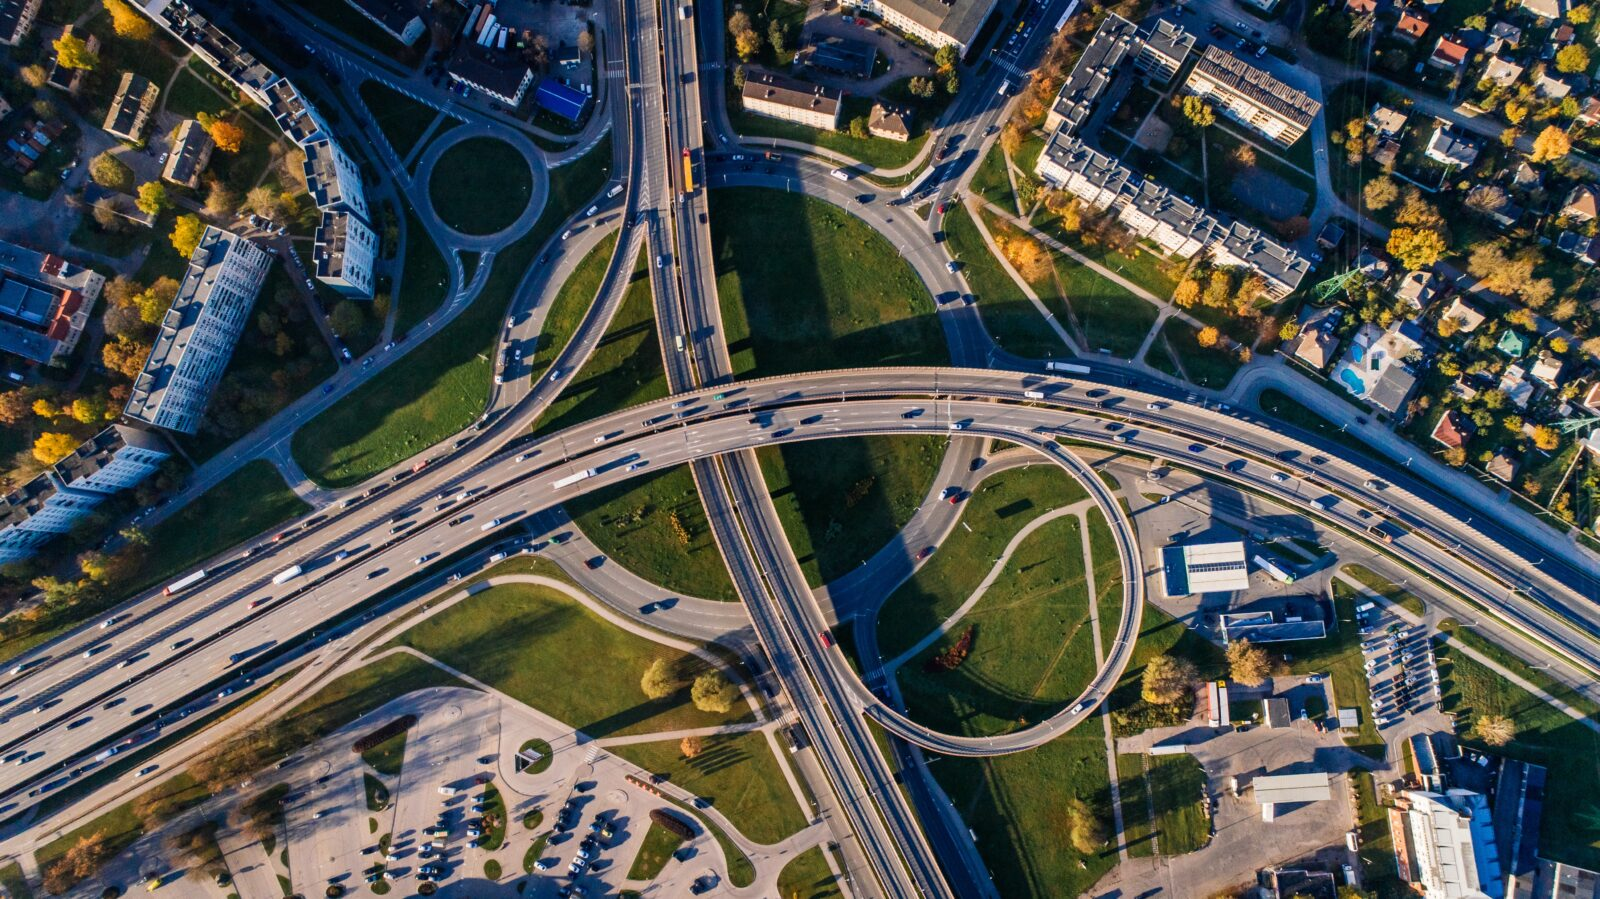 Aerial photo of traffic on overpasses above an interstate interchange.